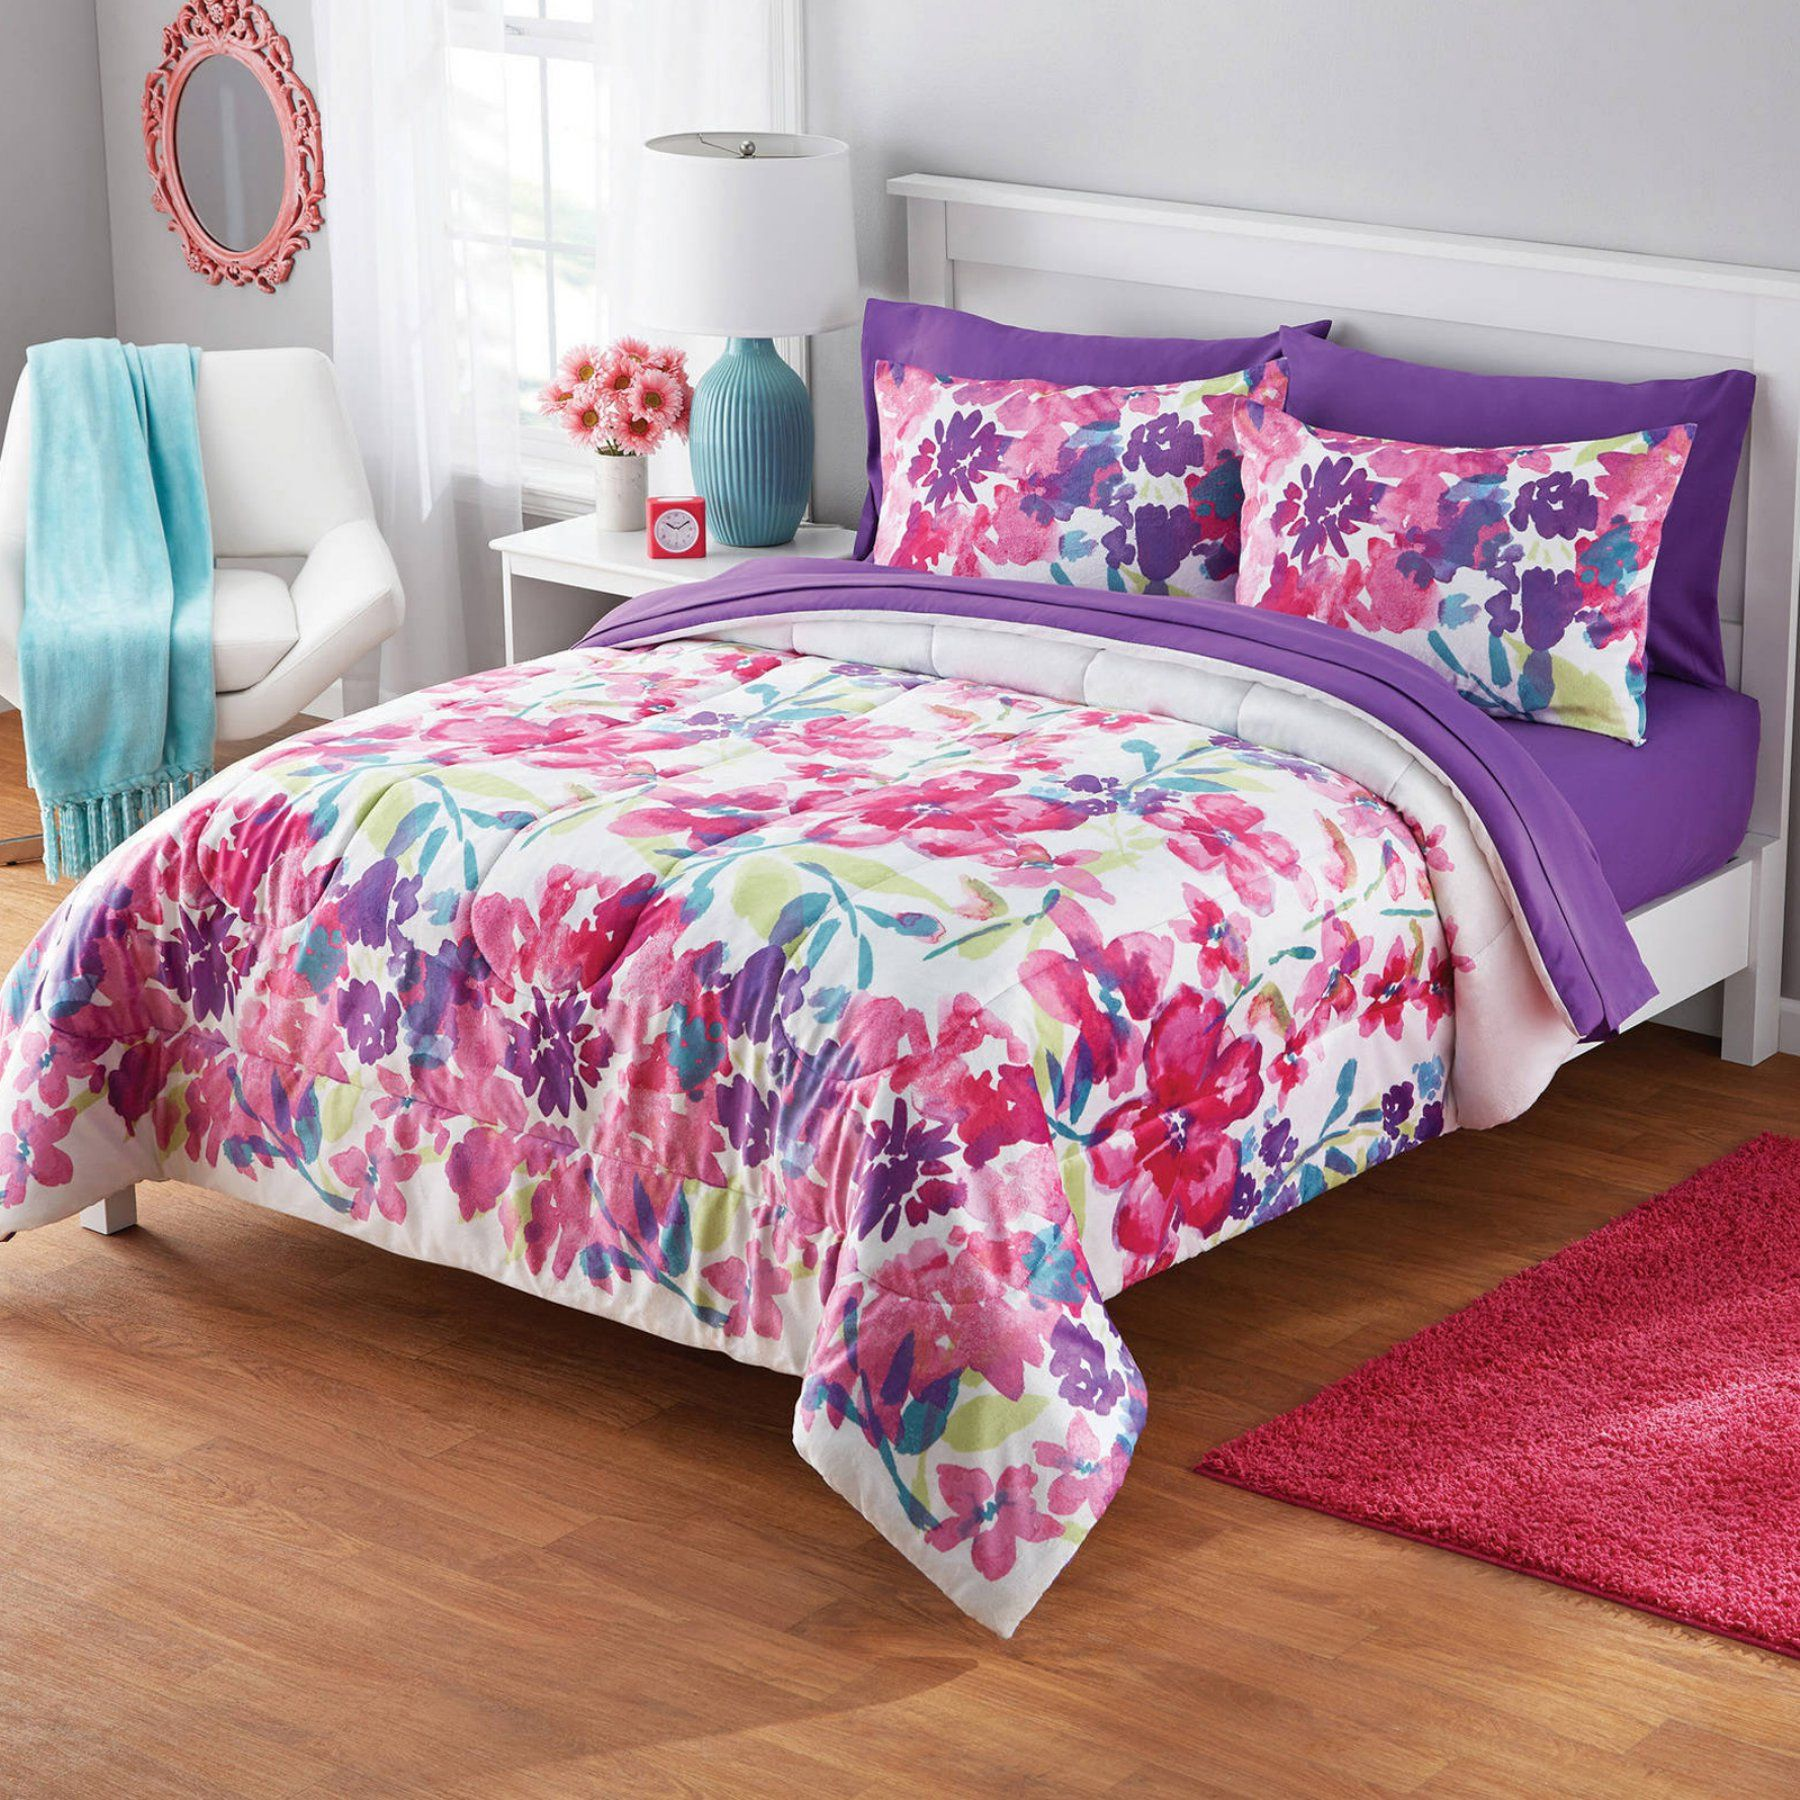 Watercolor Floral Bedding Set By Your Zone Girl S Floral